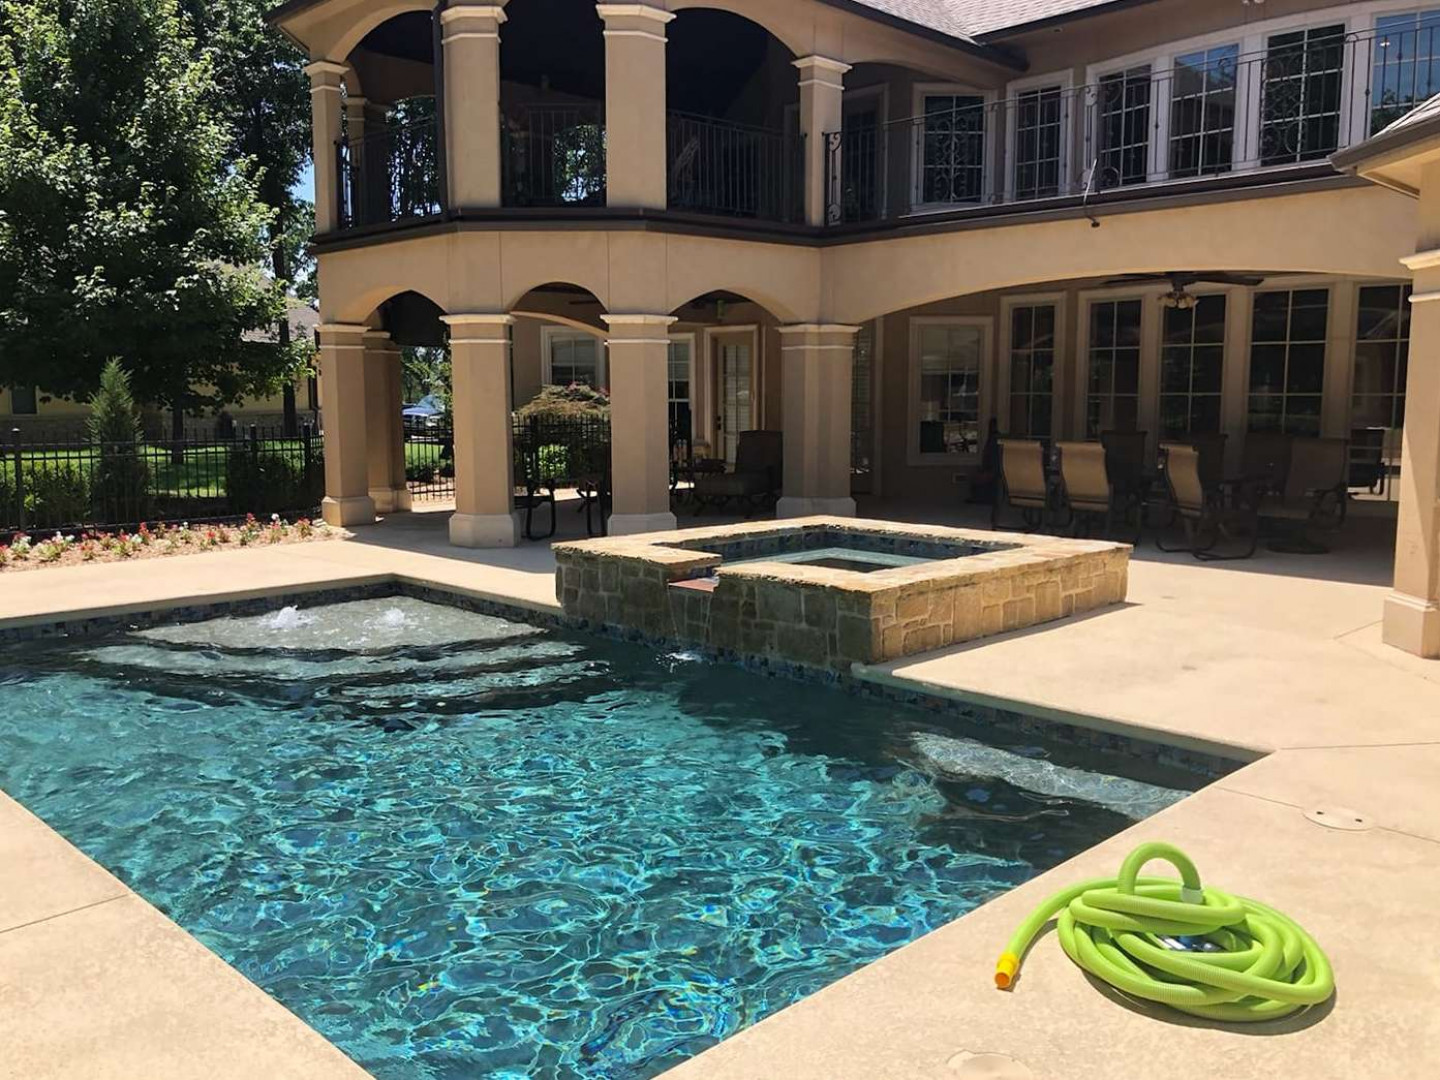 Spend Less Time Taking Care of Your Pool